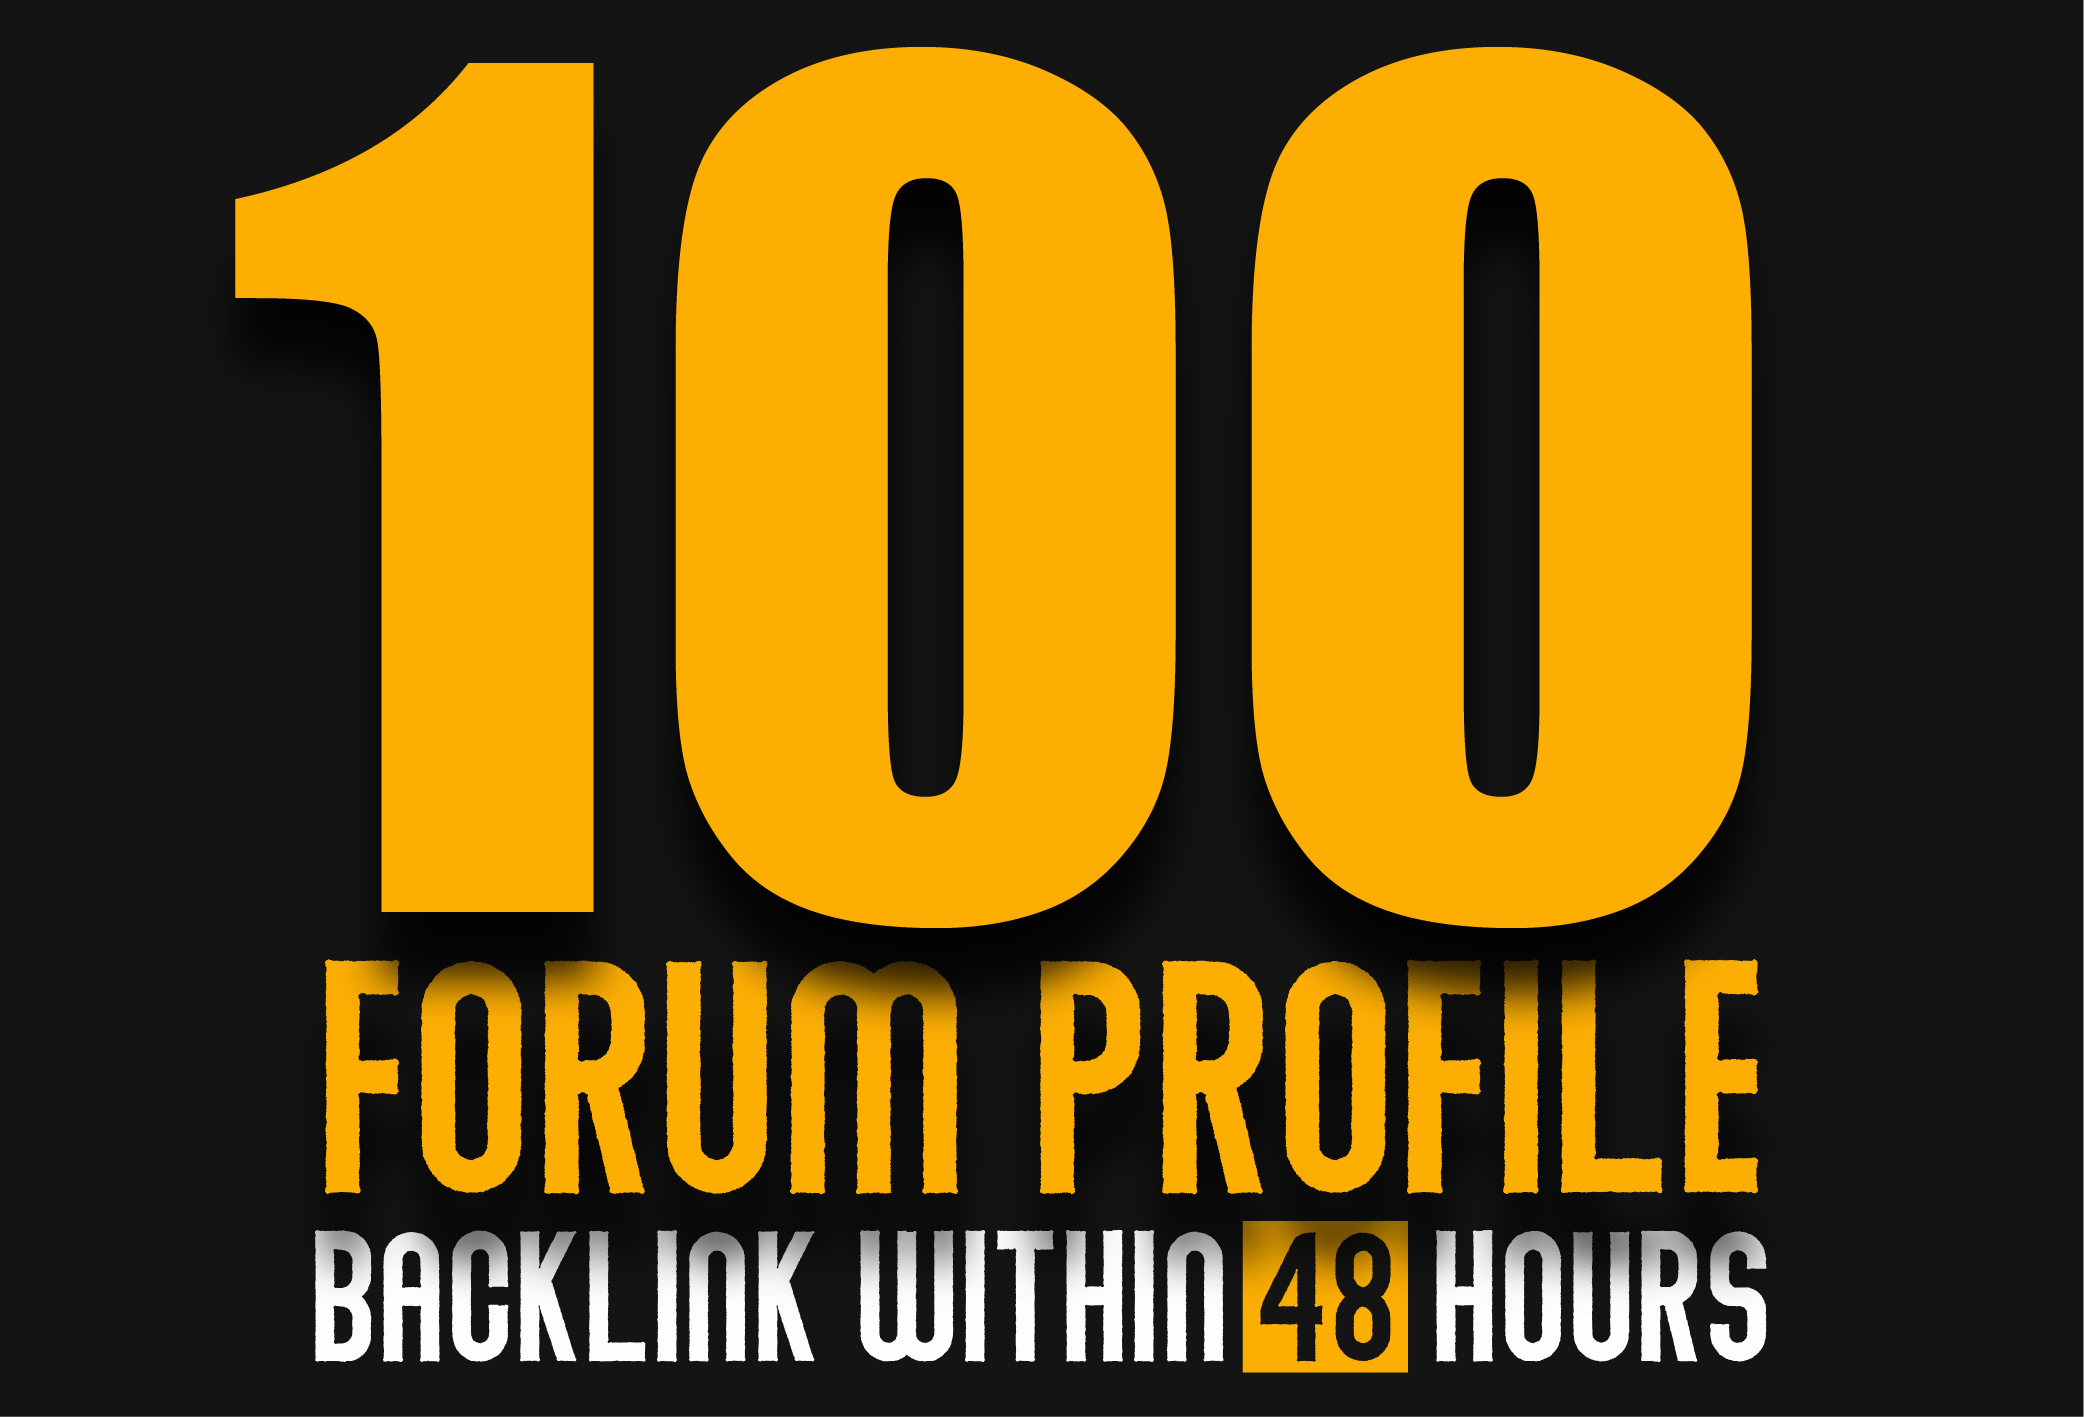 100 Forum Profile Backlink within 48 hours